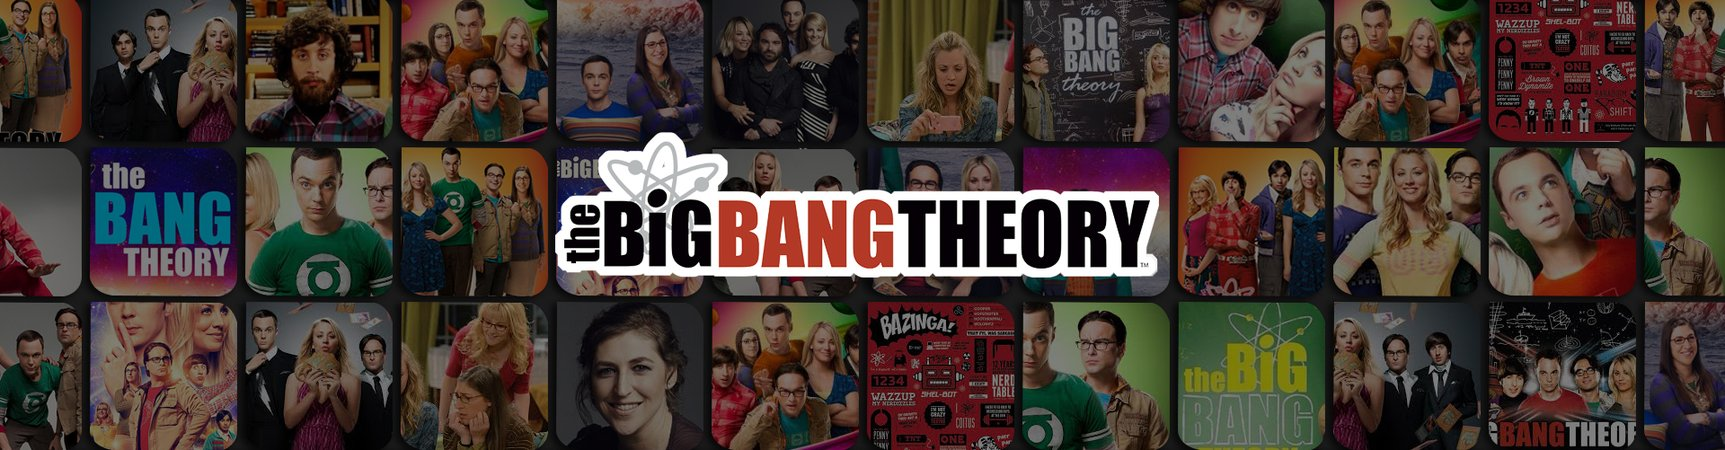 The Big Bang Theory Doormats